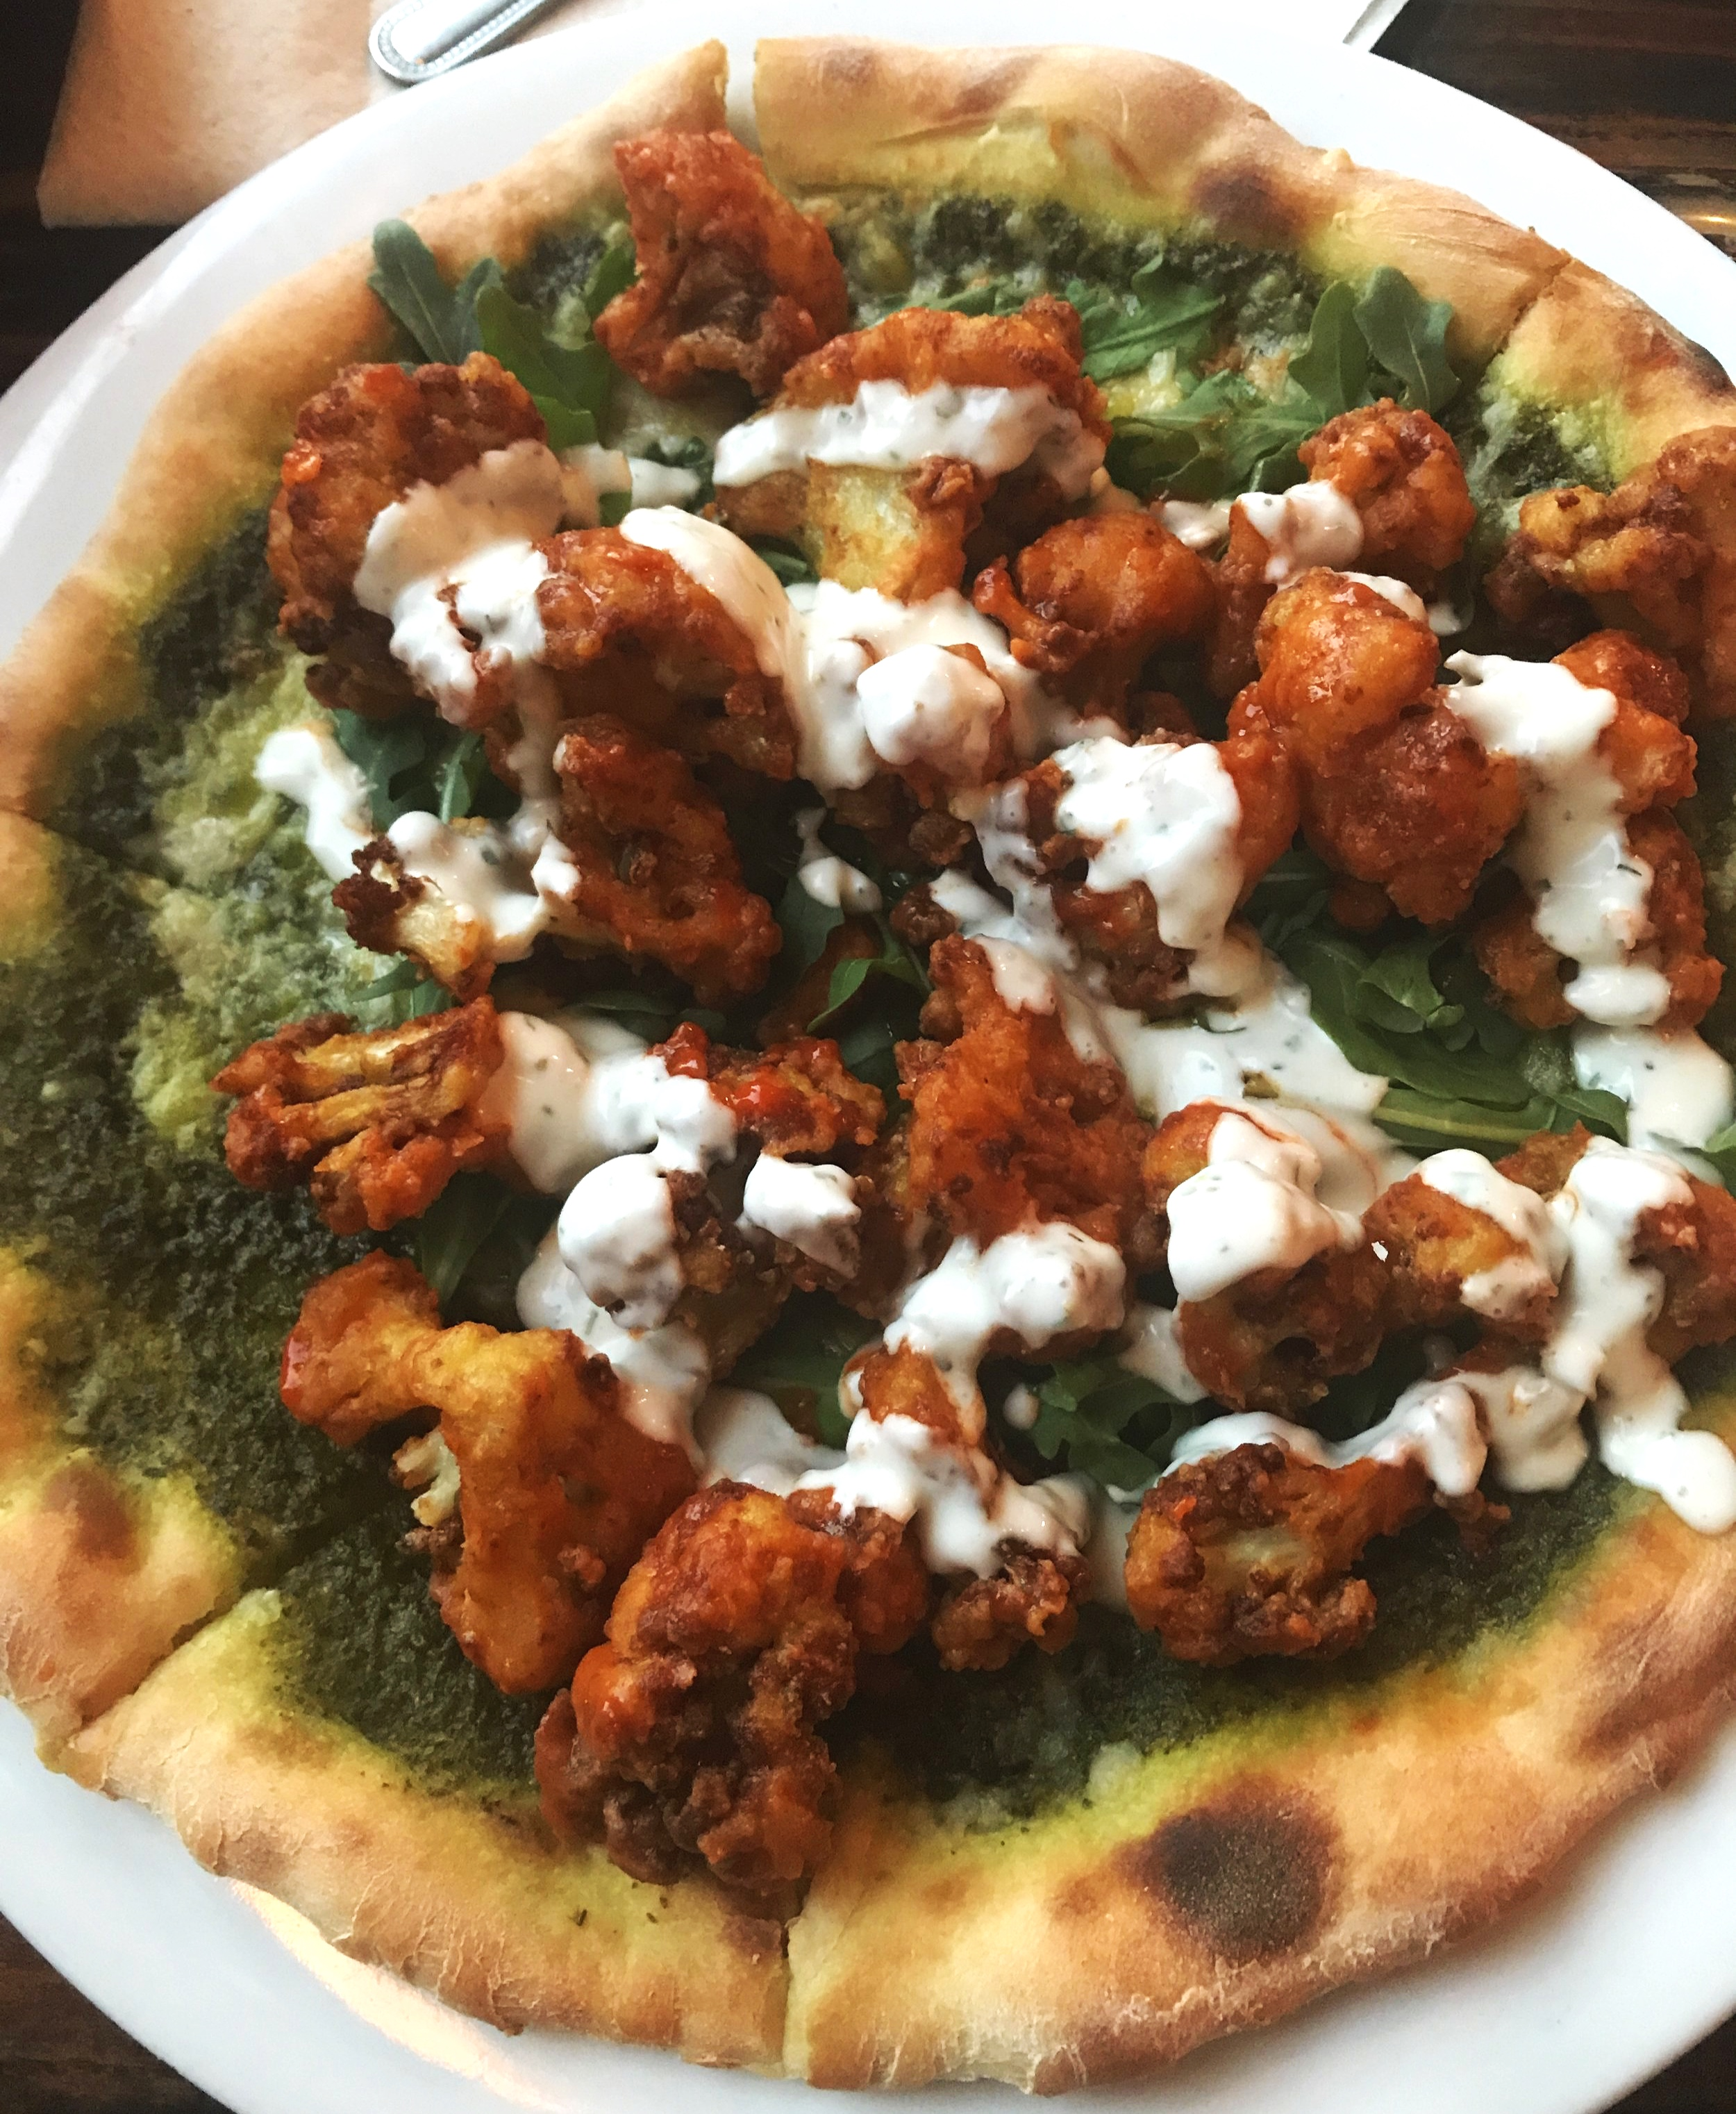 Sage Vegan Bistro's  Pesto Buffalo Cauliflower pizza topped with vegan ranch and arugula. YUM